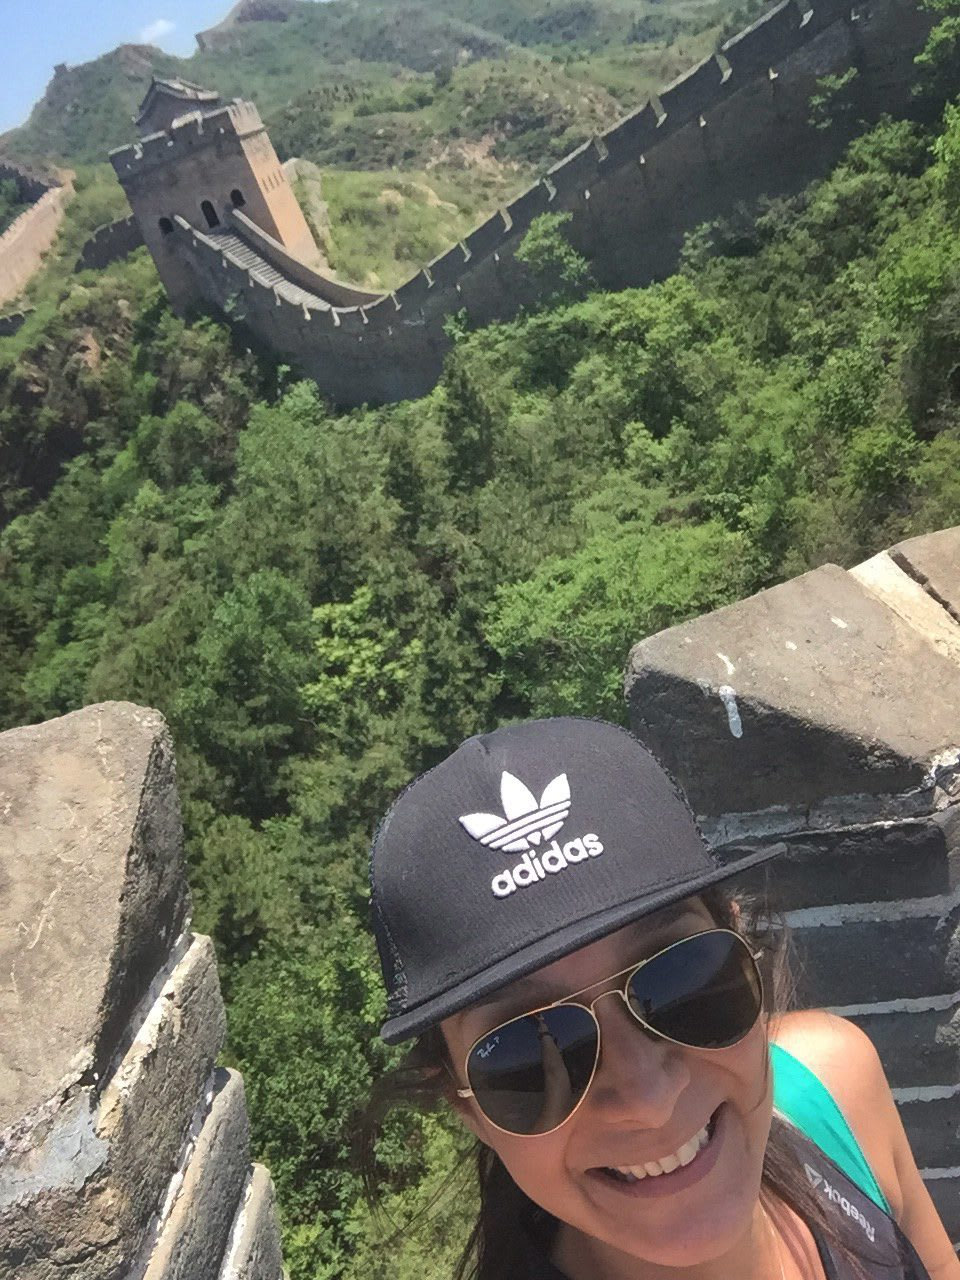 woman selfie great wall china trainee ditching stereotypes exploring